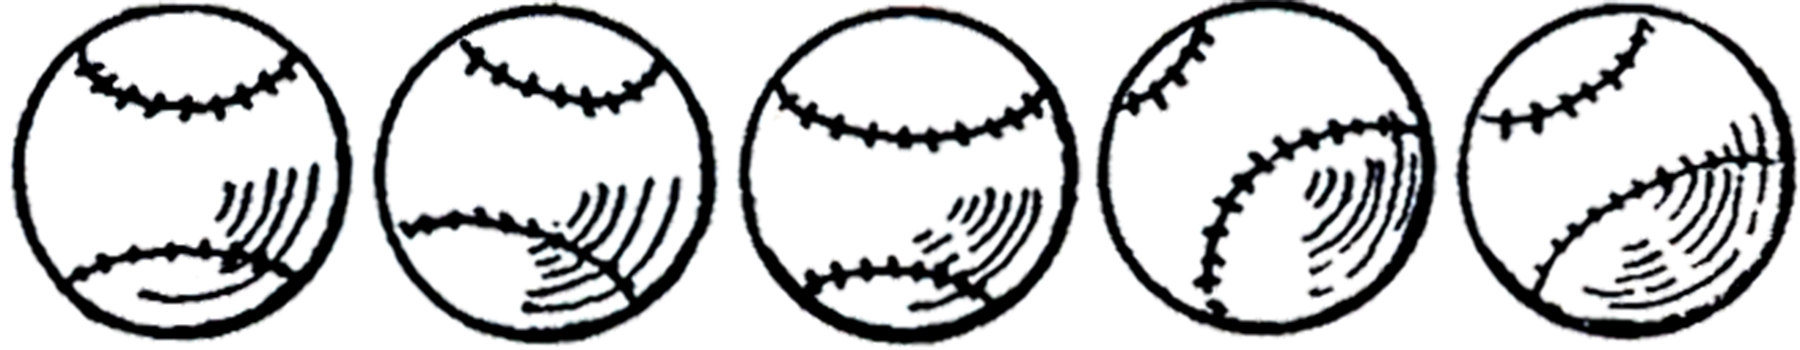 baseball border for word ophion co rh ophion co basketball border clip art basketball border clip art